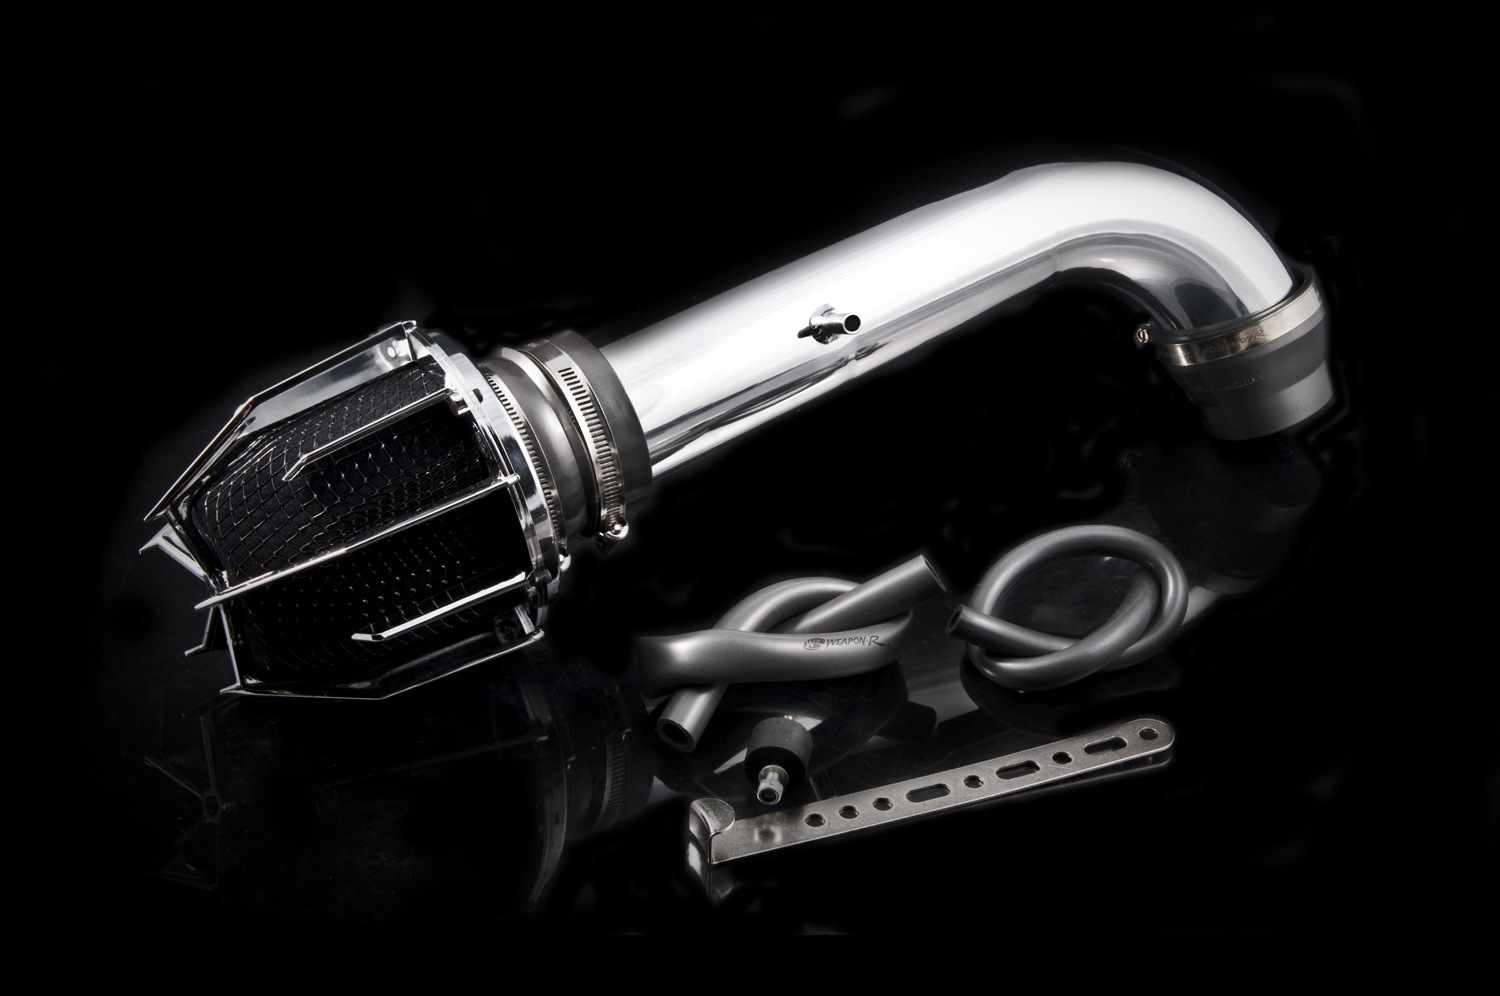 Honda Passport V6 Efi Models 1994-1997 Weapon-R Dragon Air Intake